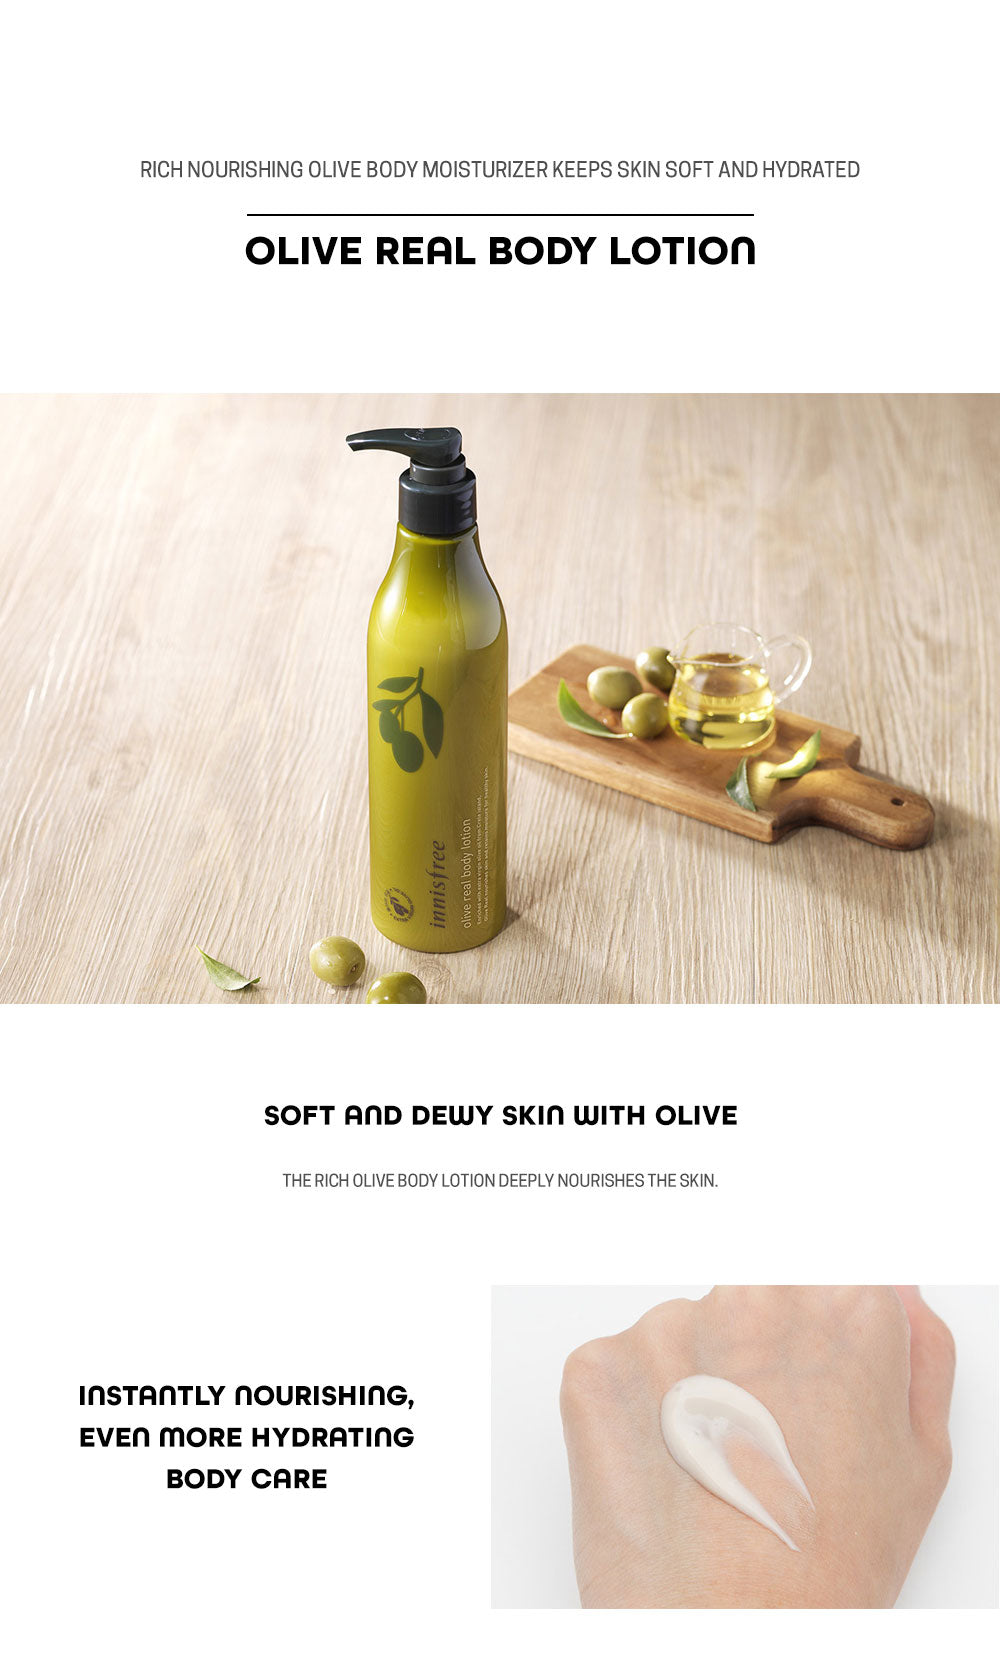 Olive-Real-Body-Lotion-1.jpg